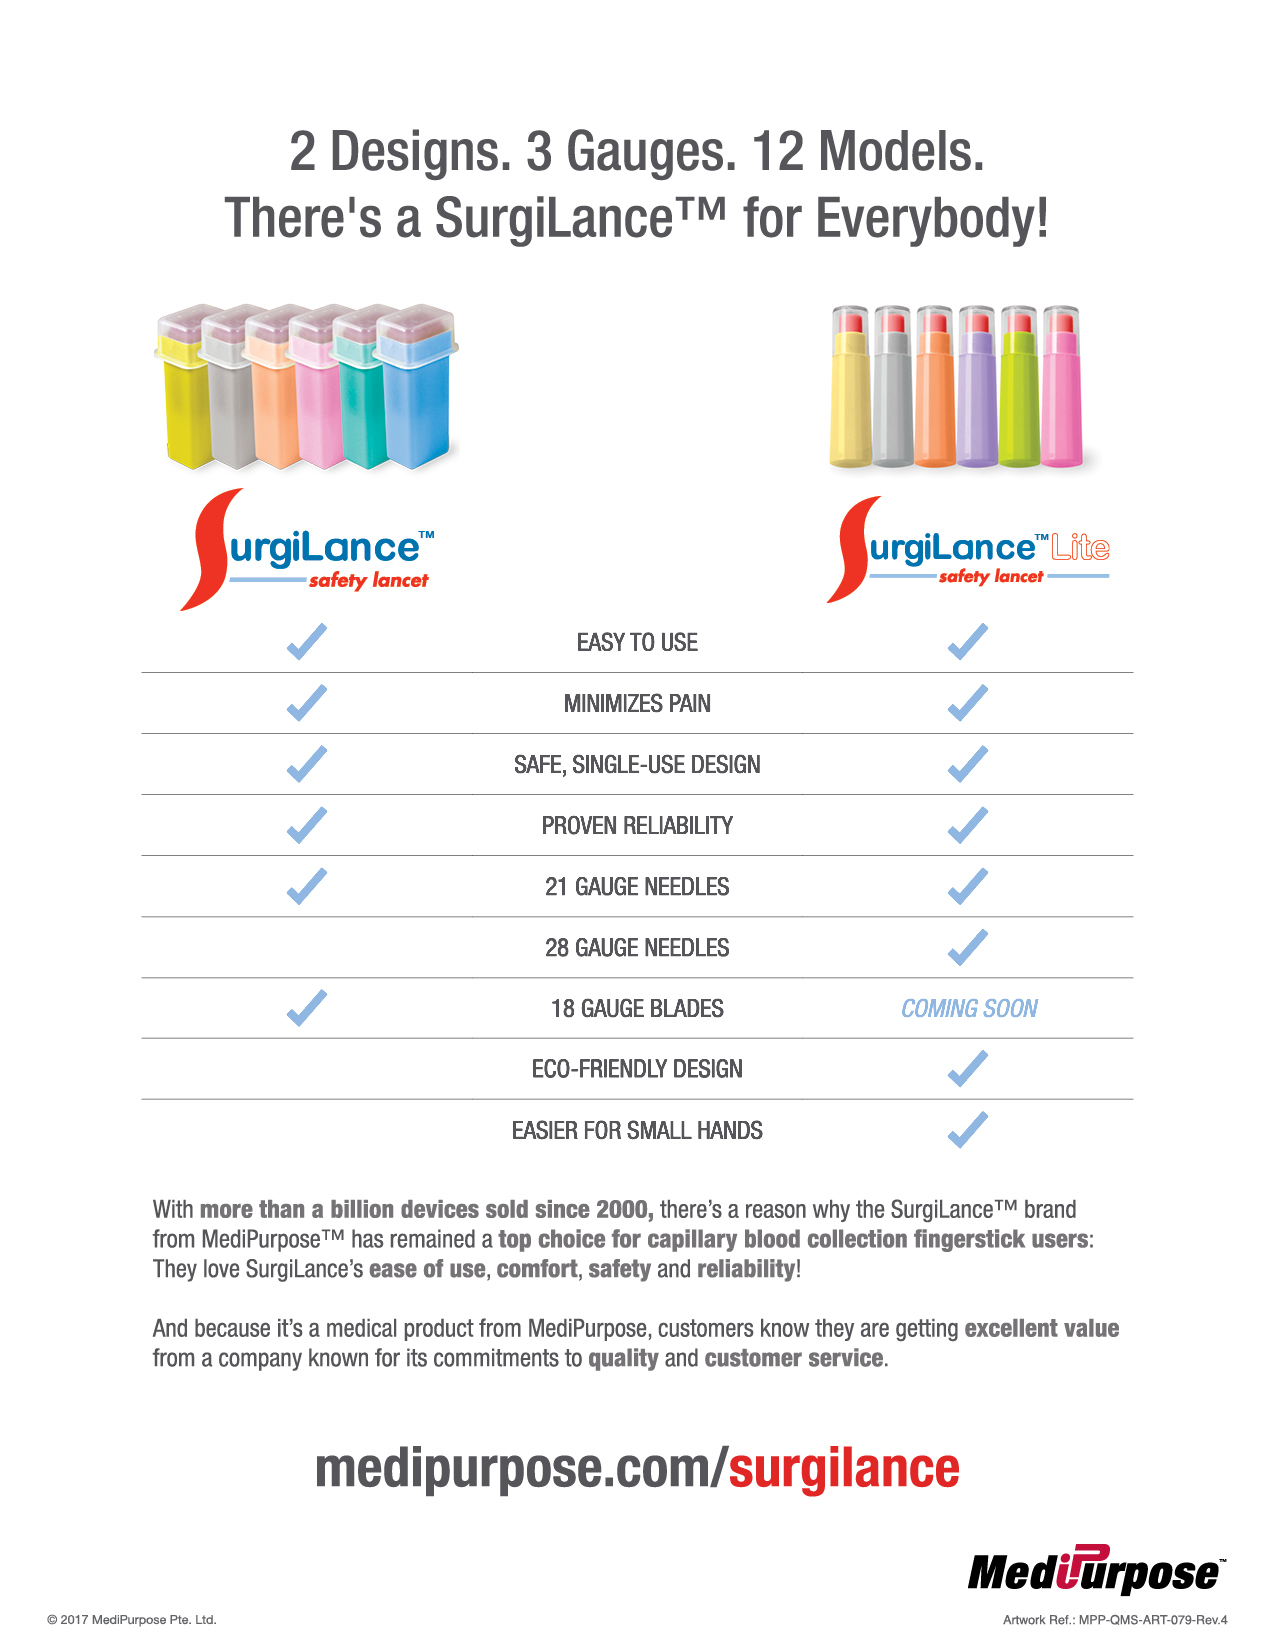 SurgiLance™ Safety Lancet Product Guide